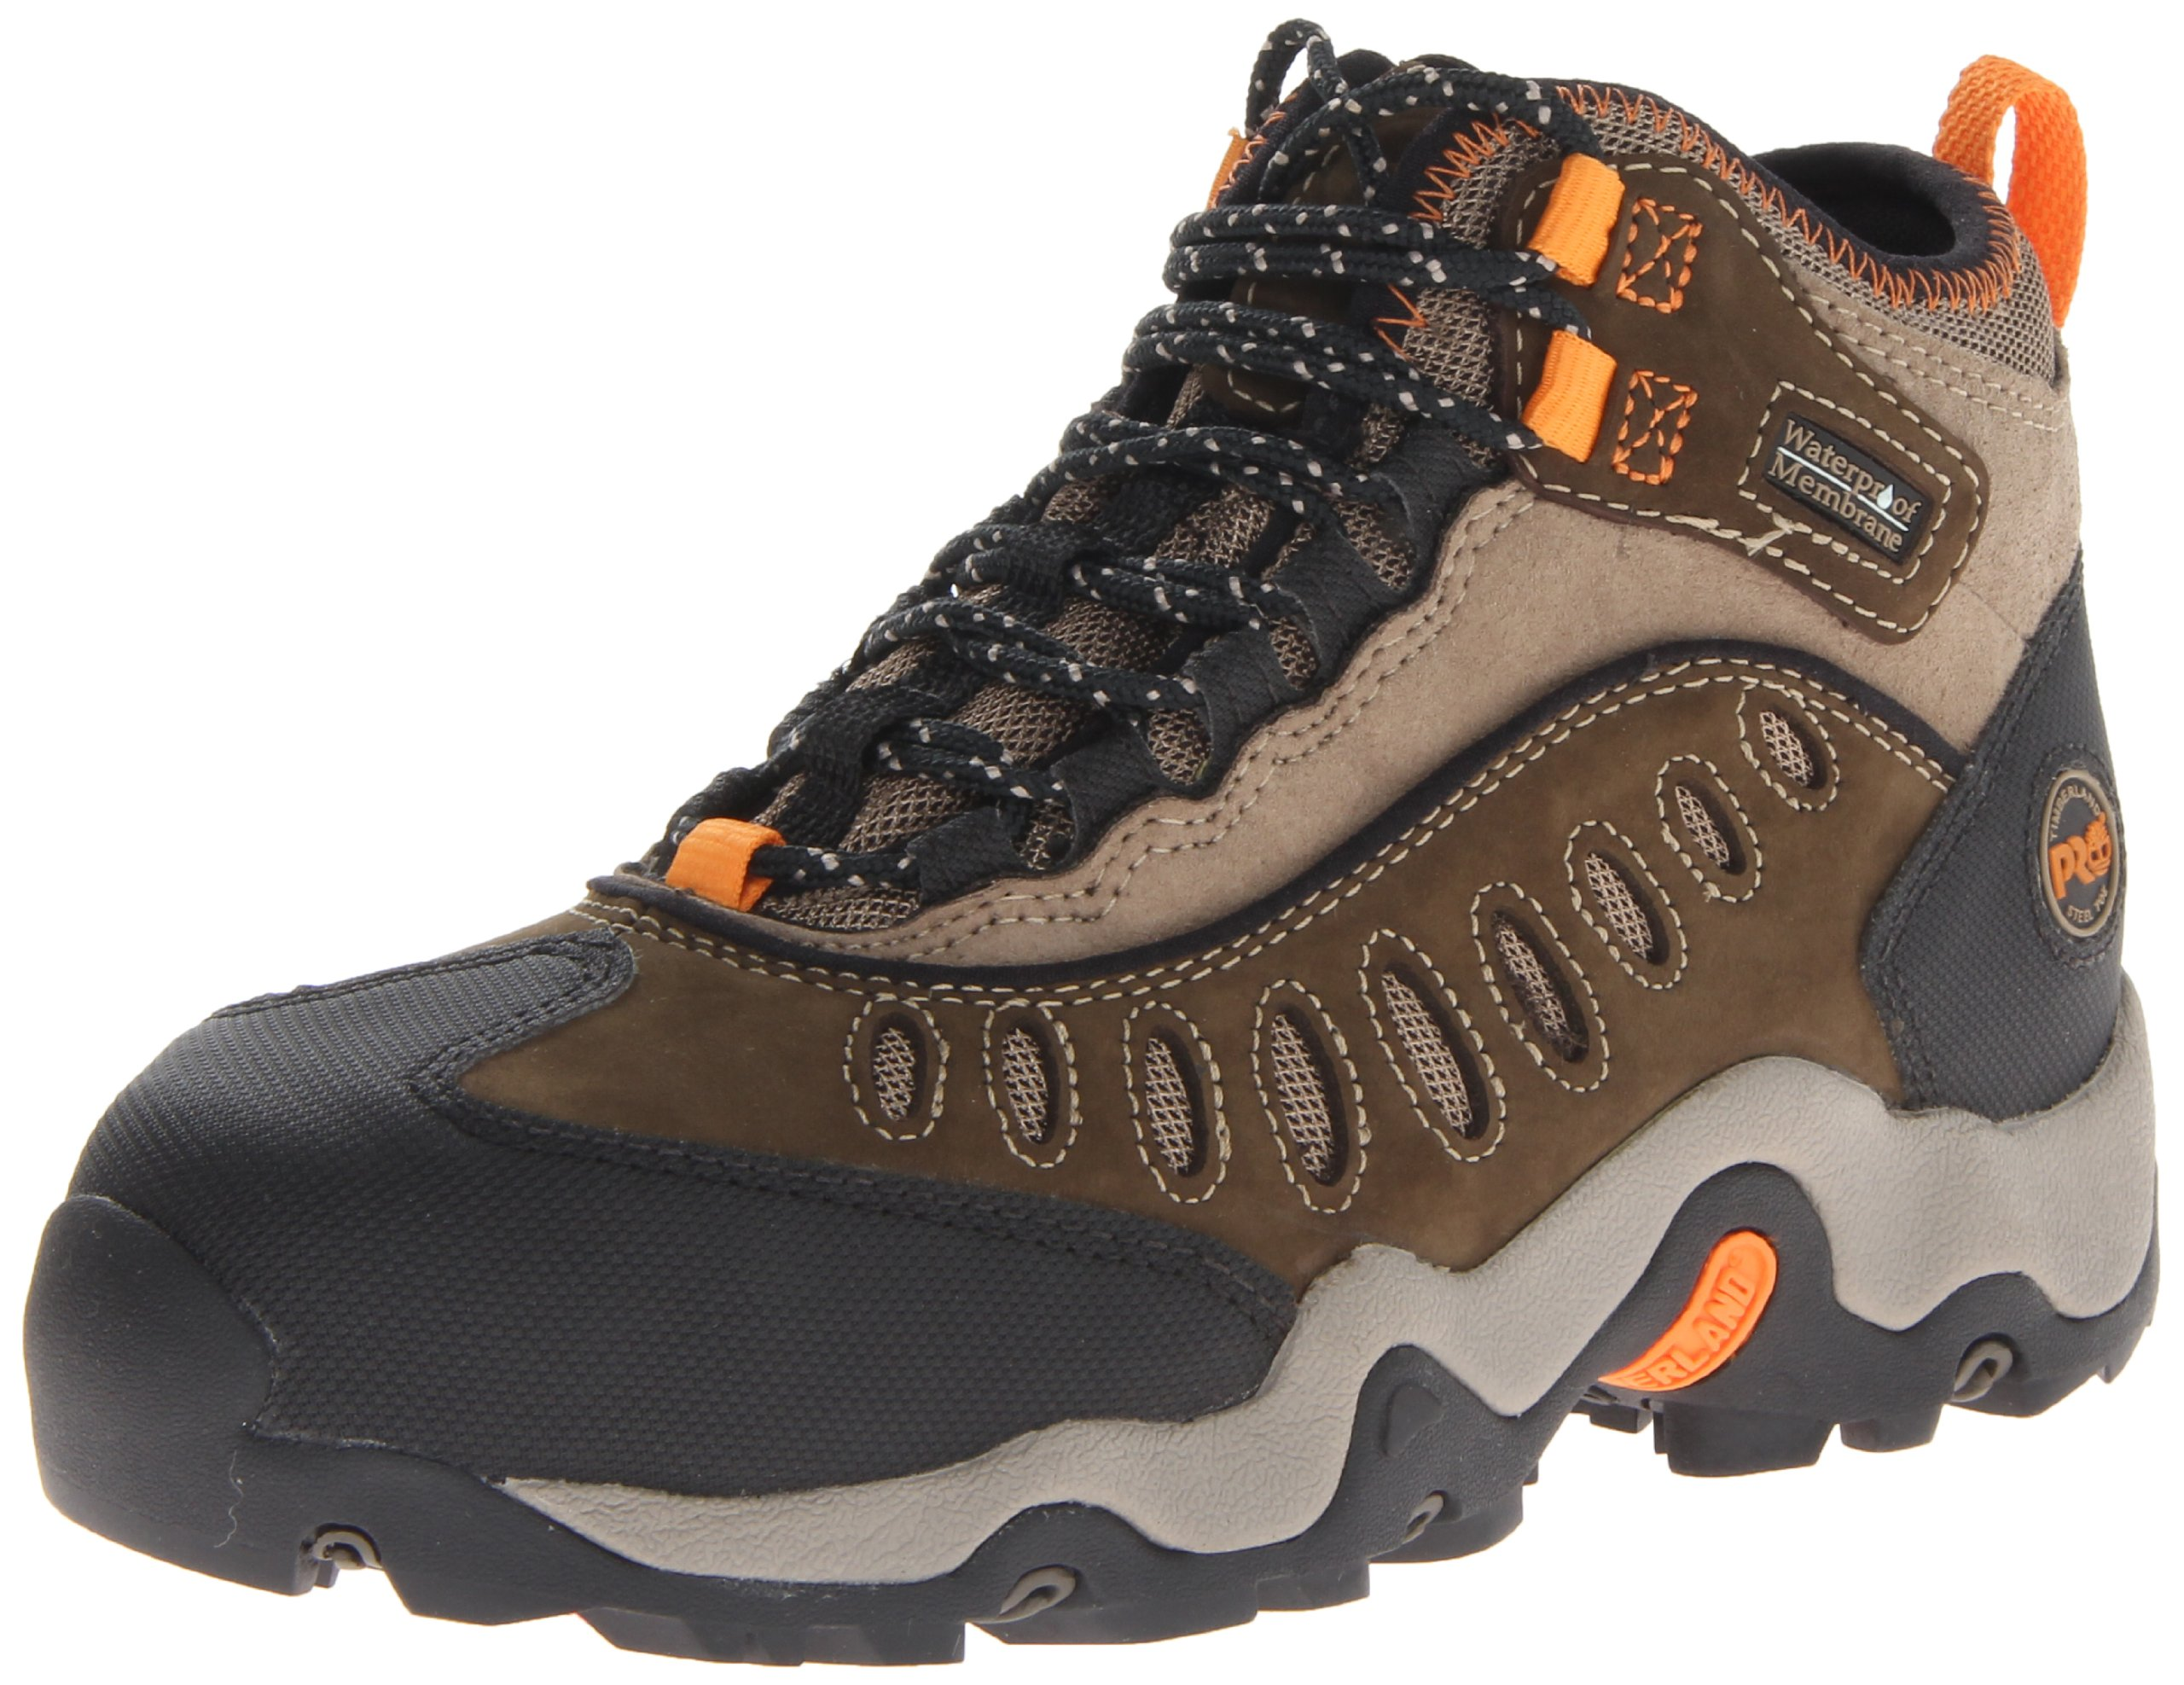 Timberland PRO Men's Mudslinger Mid Waterproof Lace-Up Fashion Sneaker,Brown Nubuck,12 W US by Timberland PRO